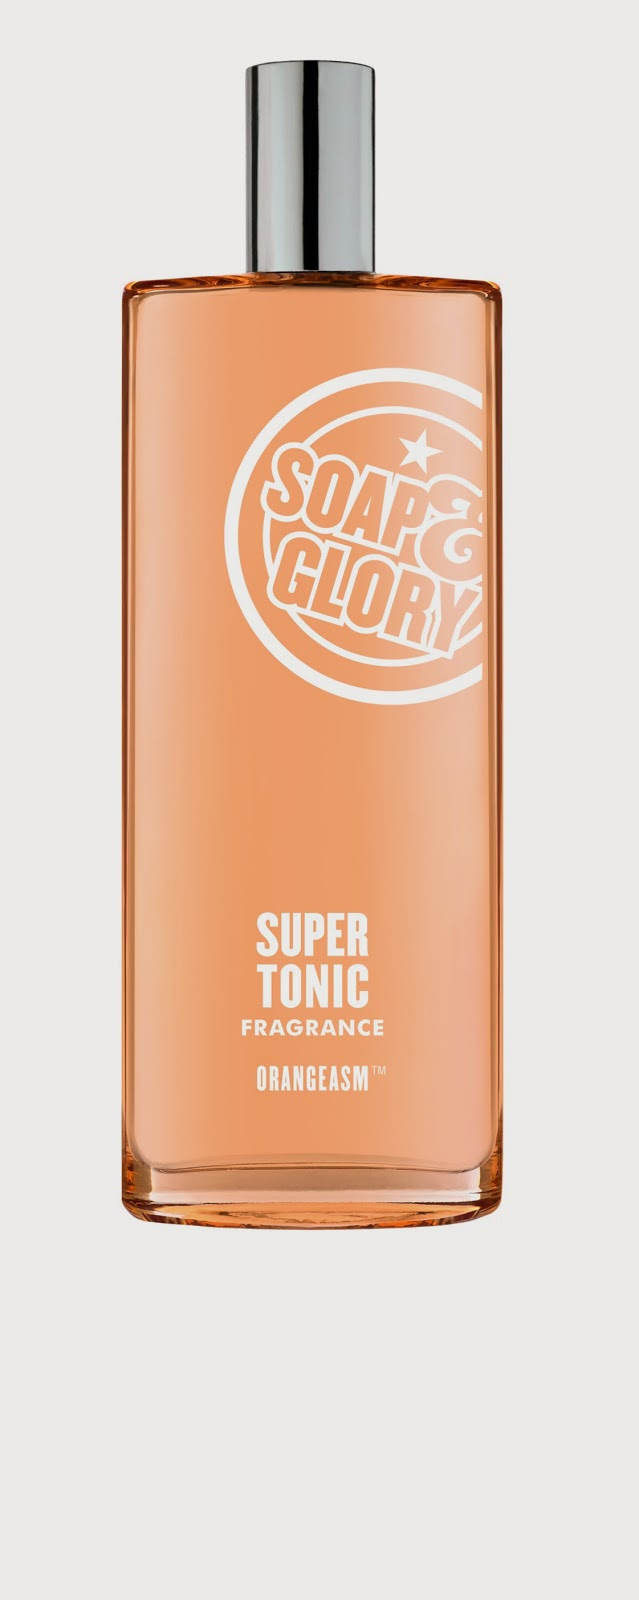 soap and glory orangeasm super tonic fragrance